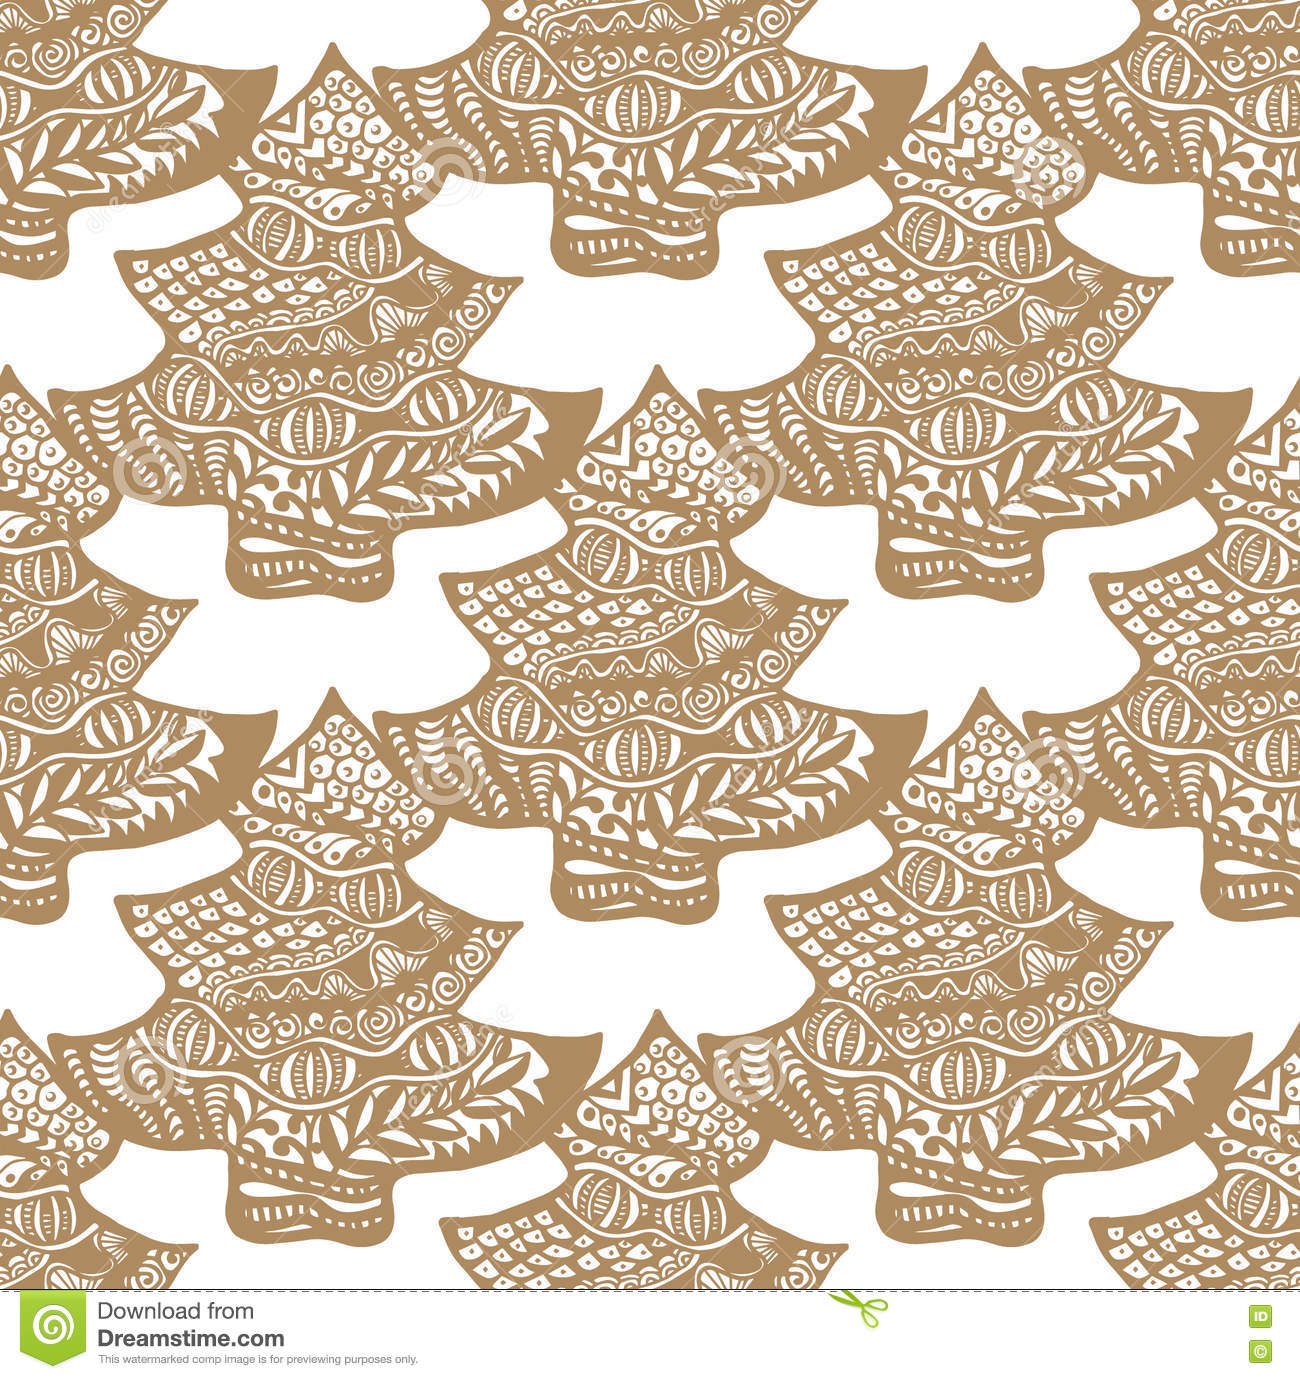 Cookie in the form of a Christmas tree pattern